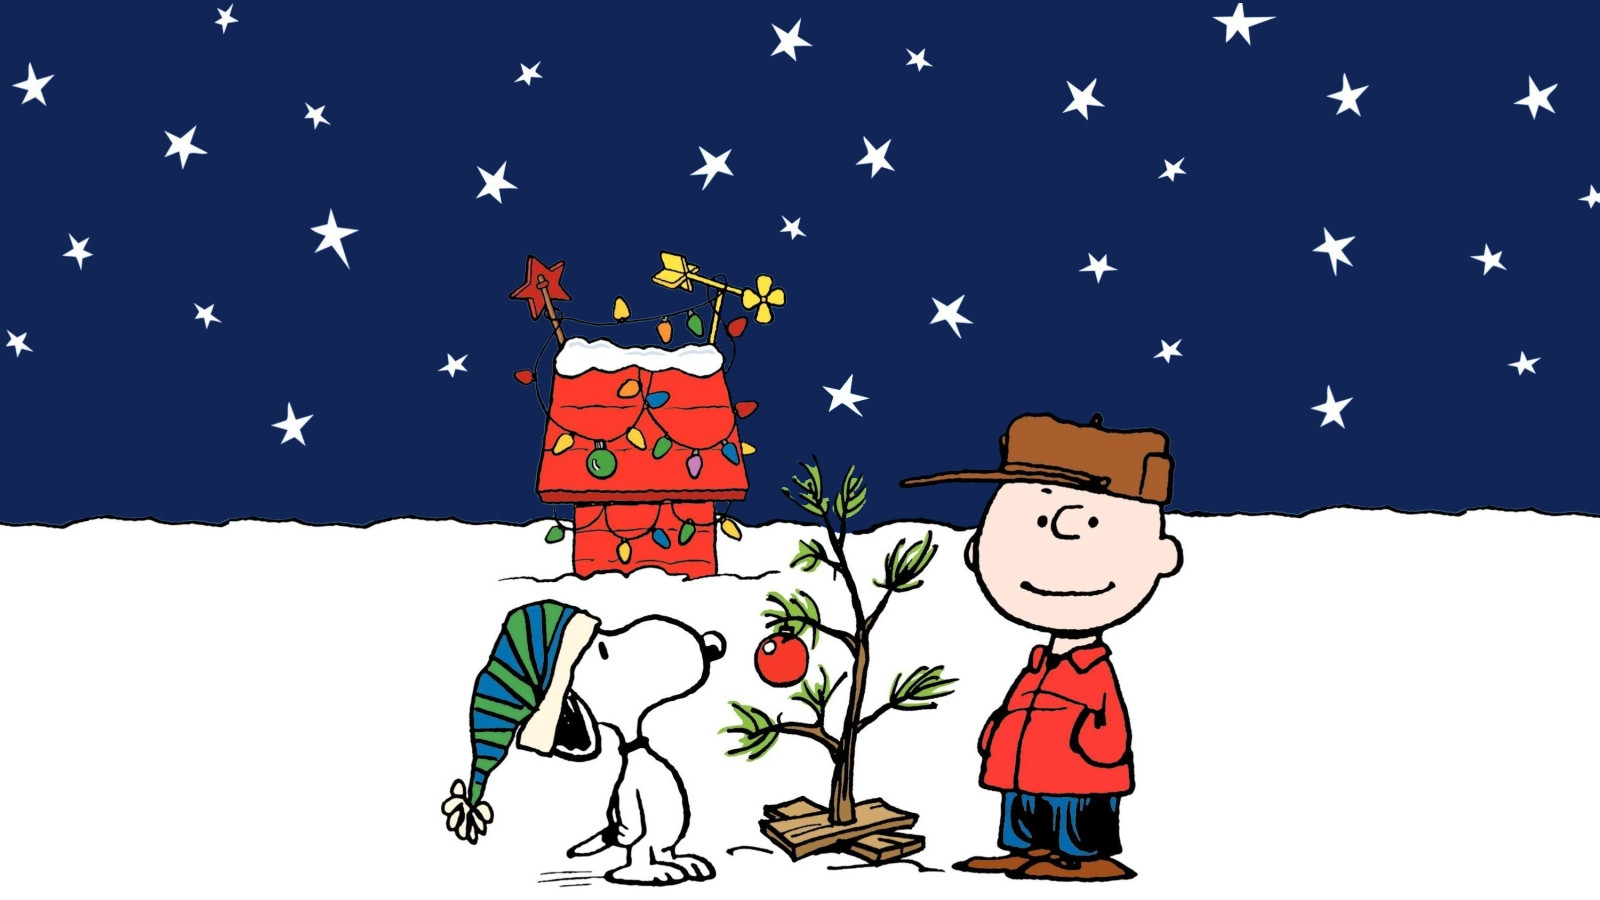 Snoopy Christmas Pictures Full Desktop Backgrounds 1600x900